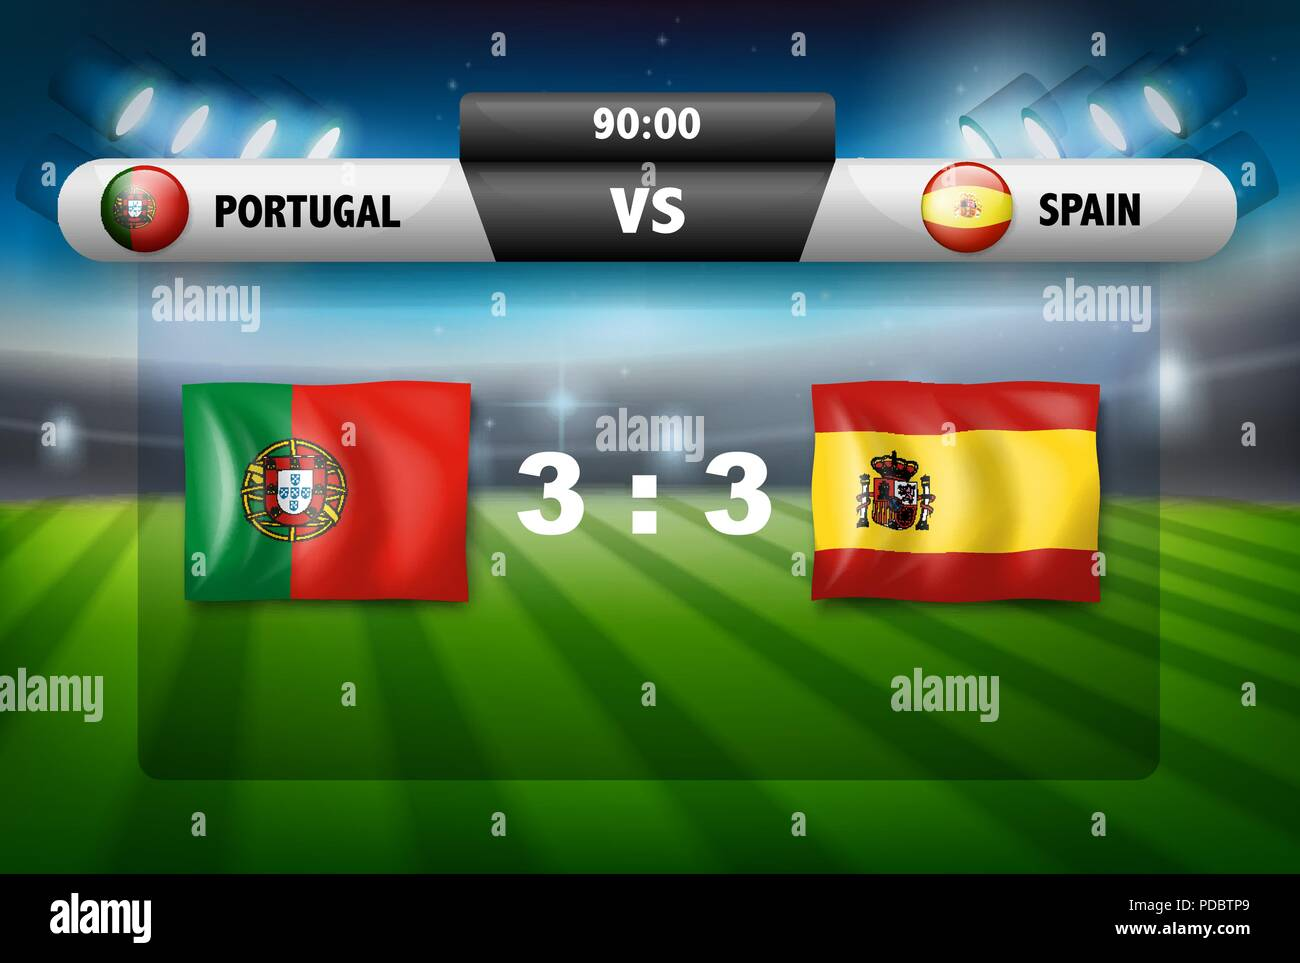 Protugal VS Spain scoreboard illustration - Stock Vector